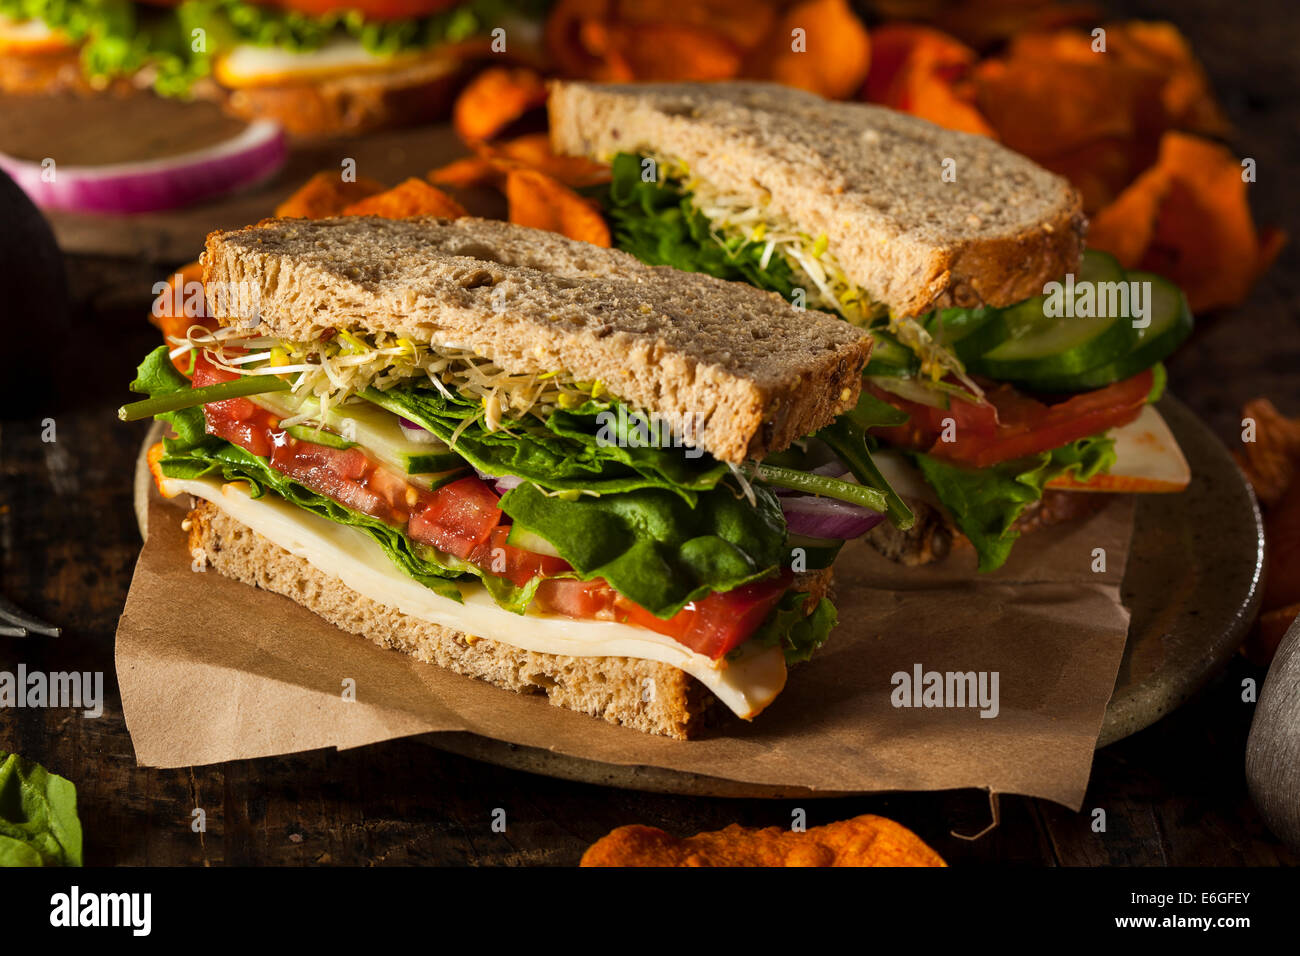 Healthy Vegetarian Veggie Sandwich with Spinach Tomato Cucumber - Stock Image